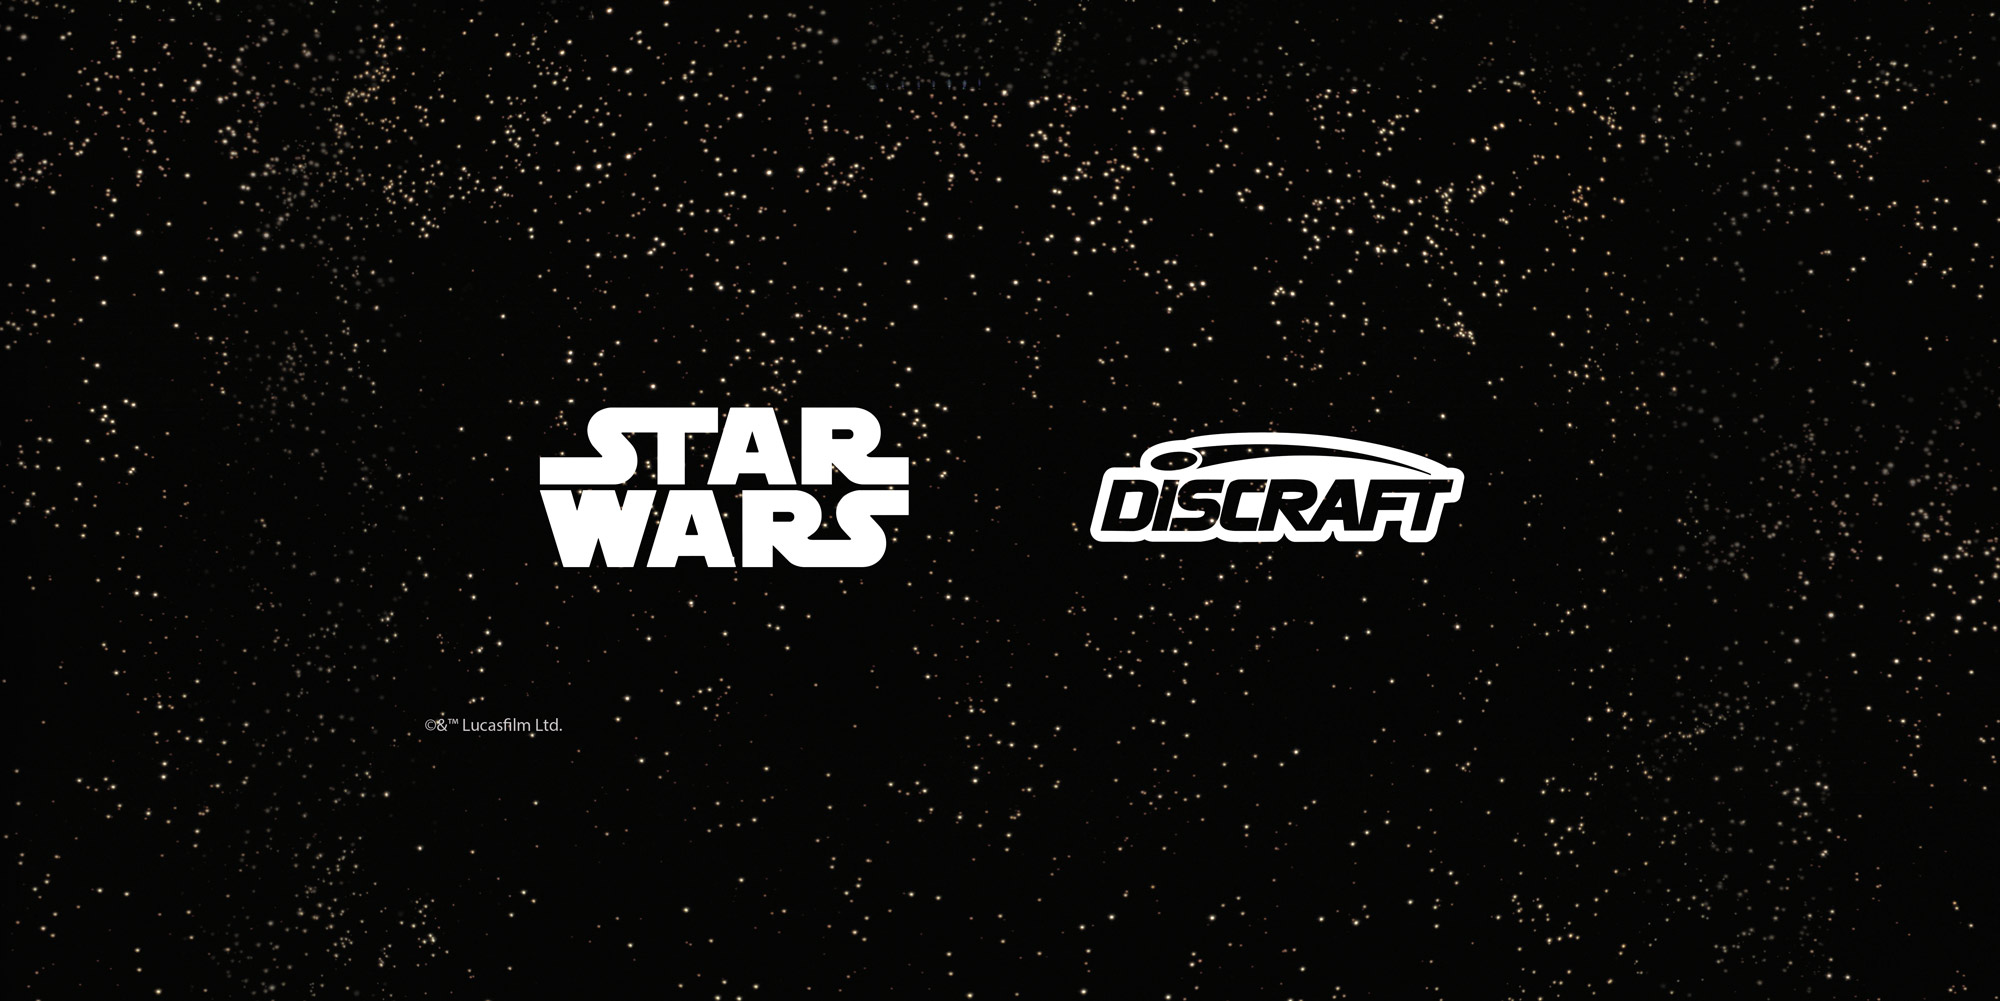 The Official Disc Golf and Ultimate Star Wars Disc Collection